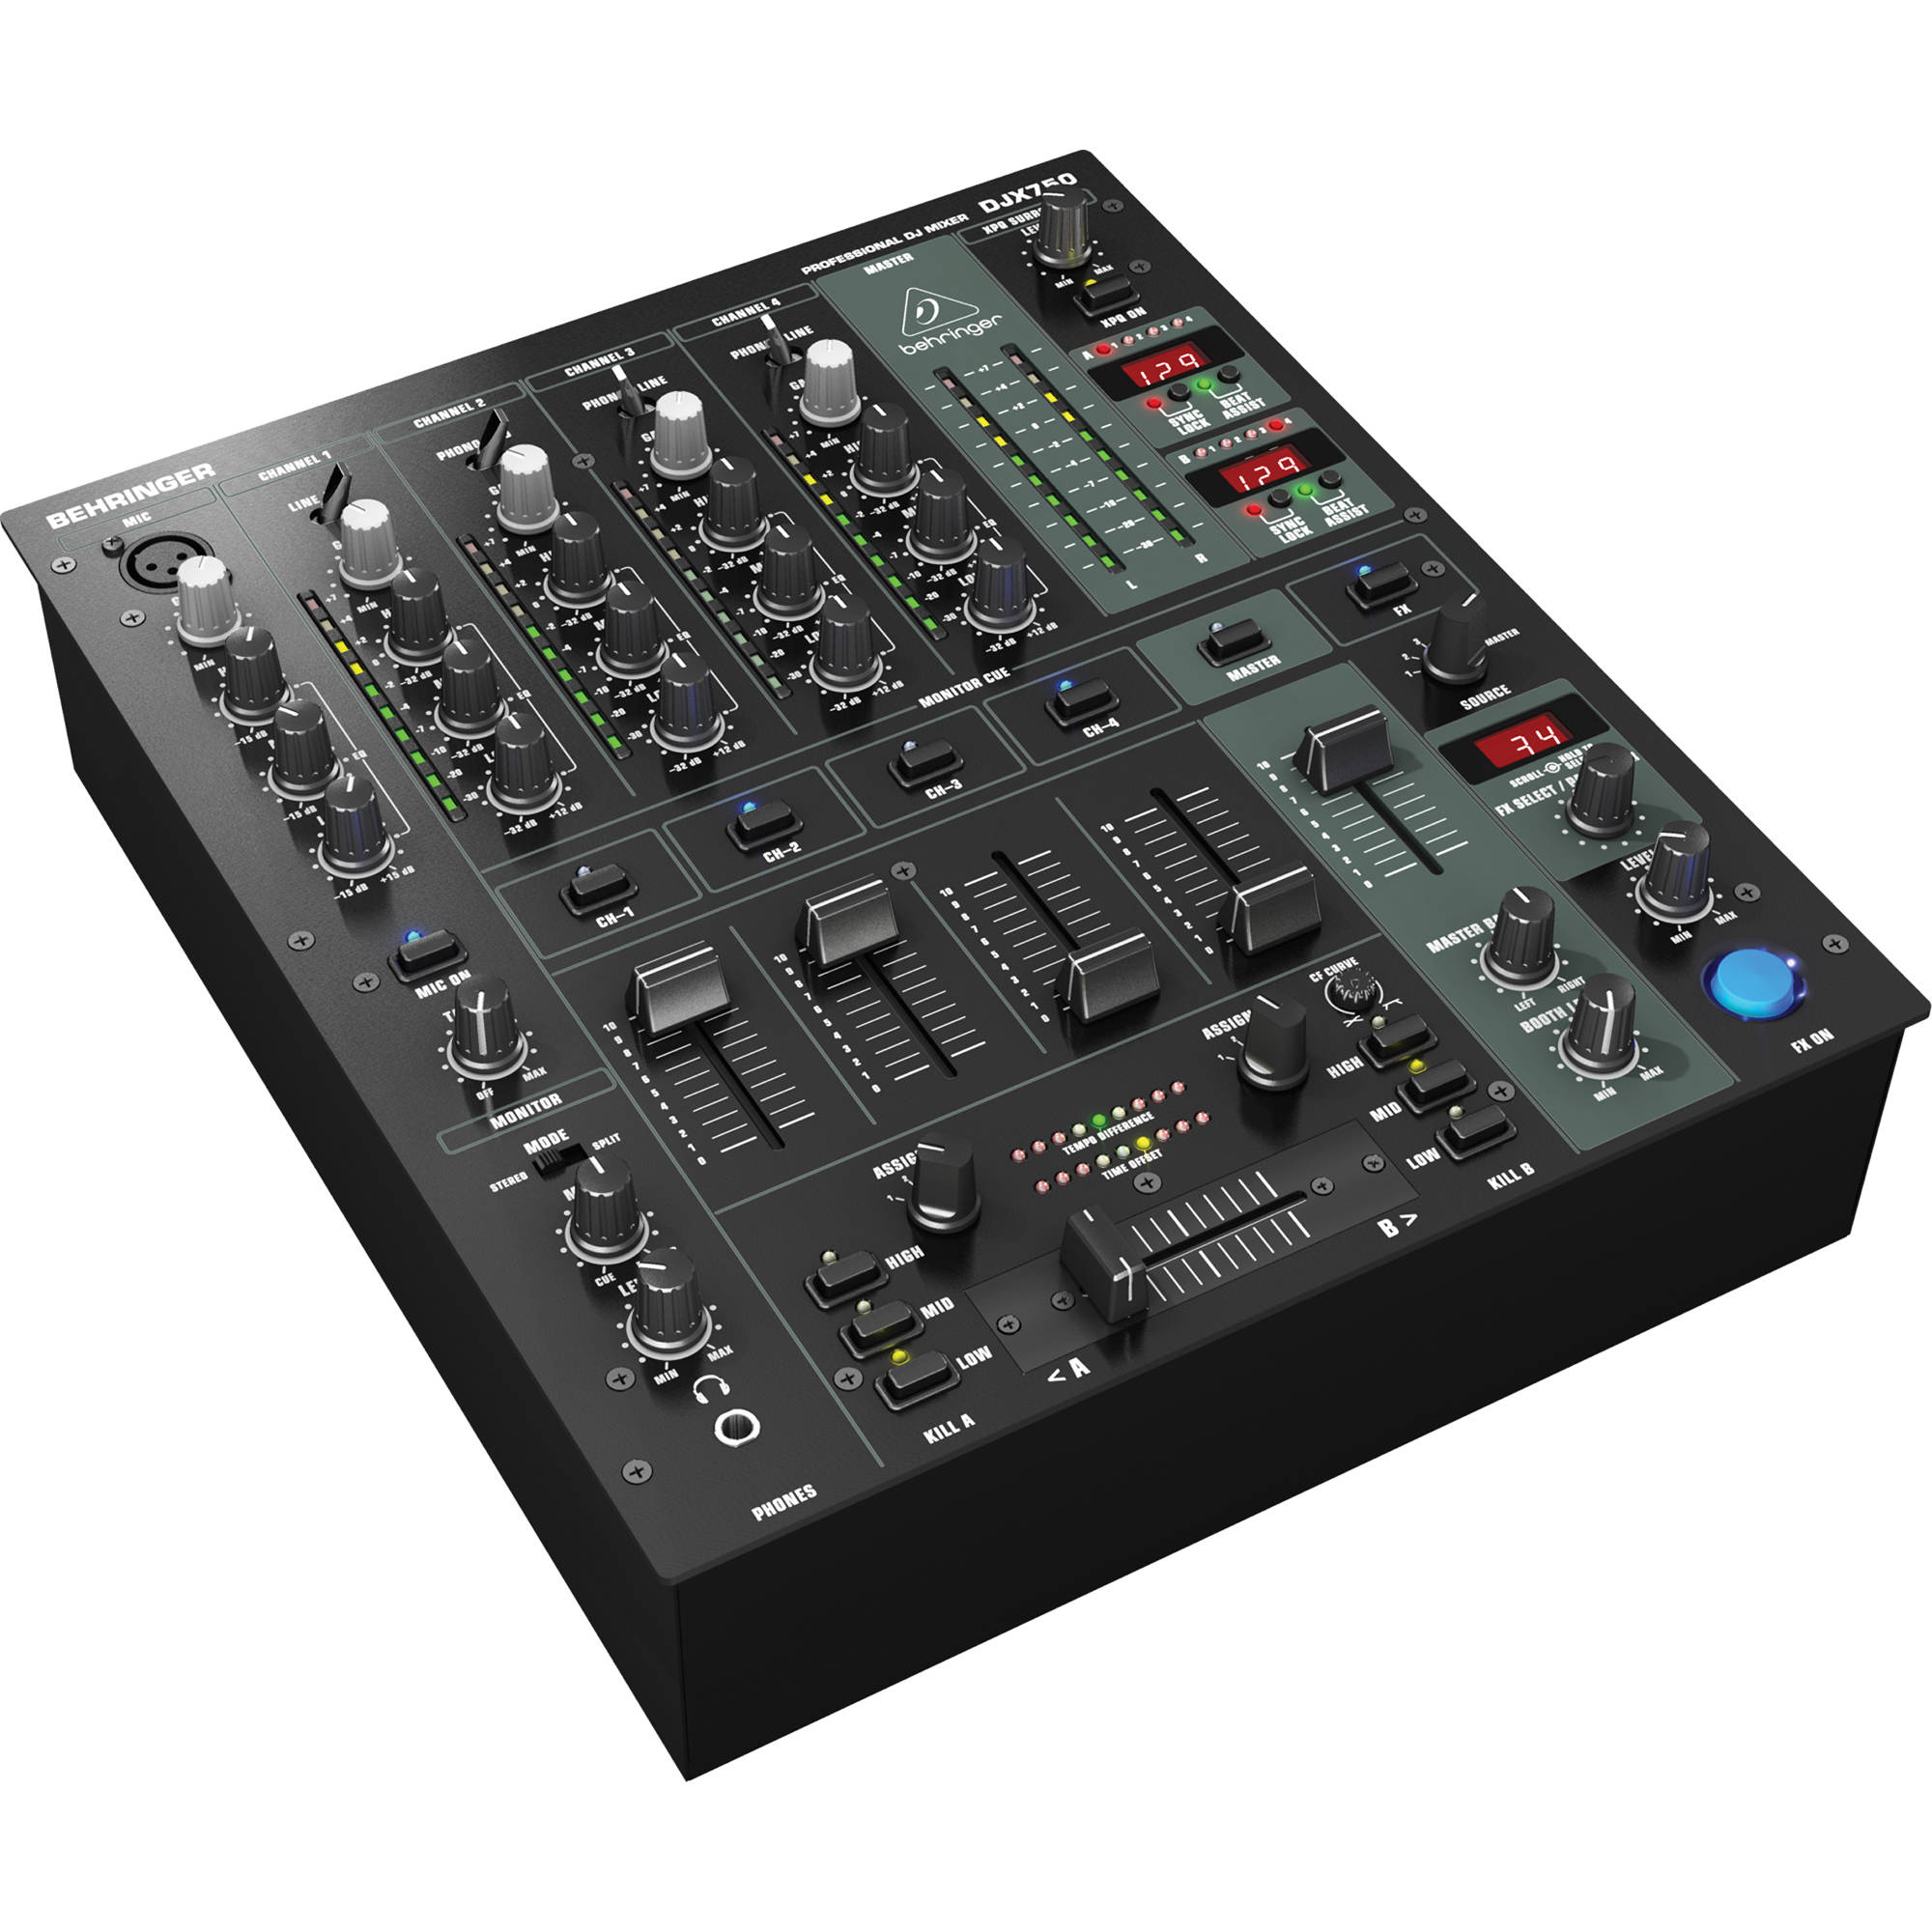 behringer djx 750 professional 5 channel dj mixer djx 750 b h. Black Bedroom Furniture Sets. Home Design Ideas